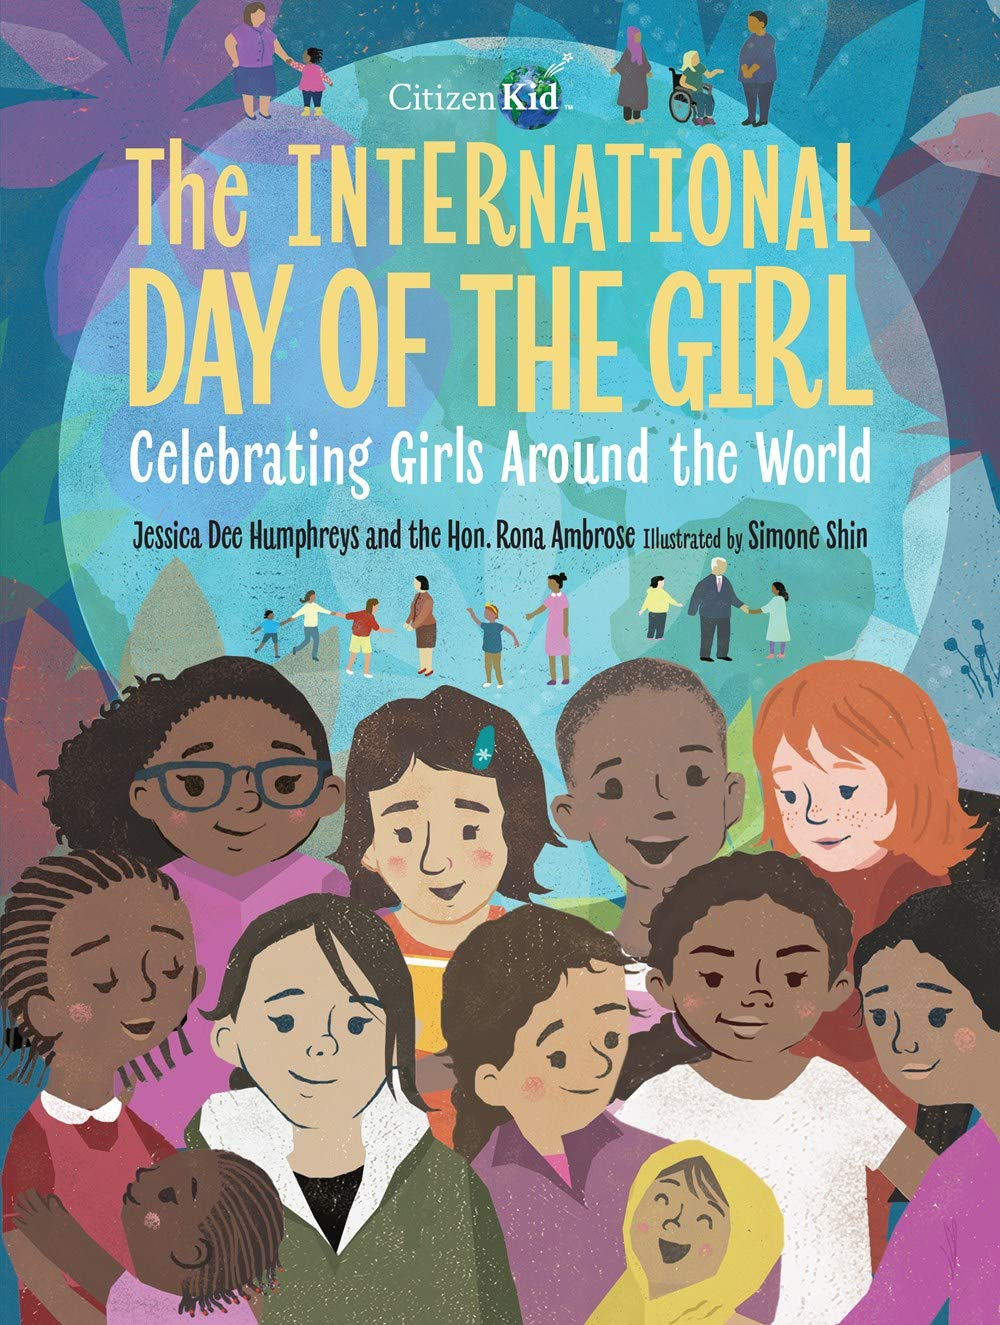 The International Day of the Girl: Celebrating Girls Around the World